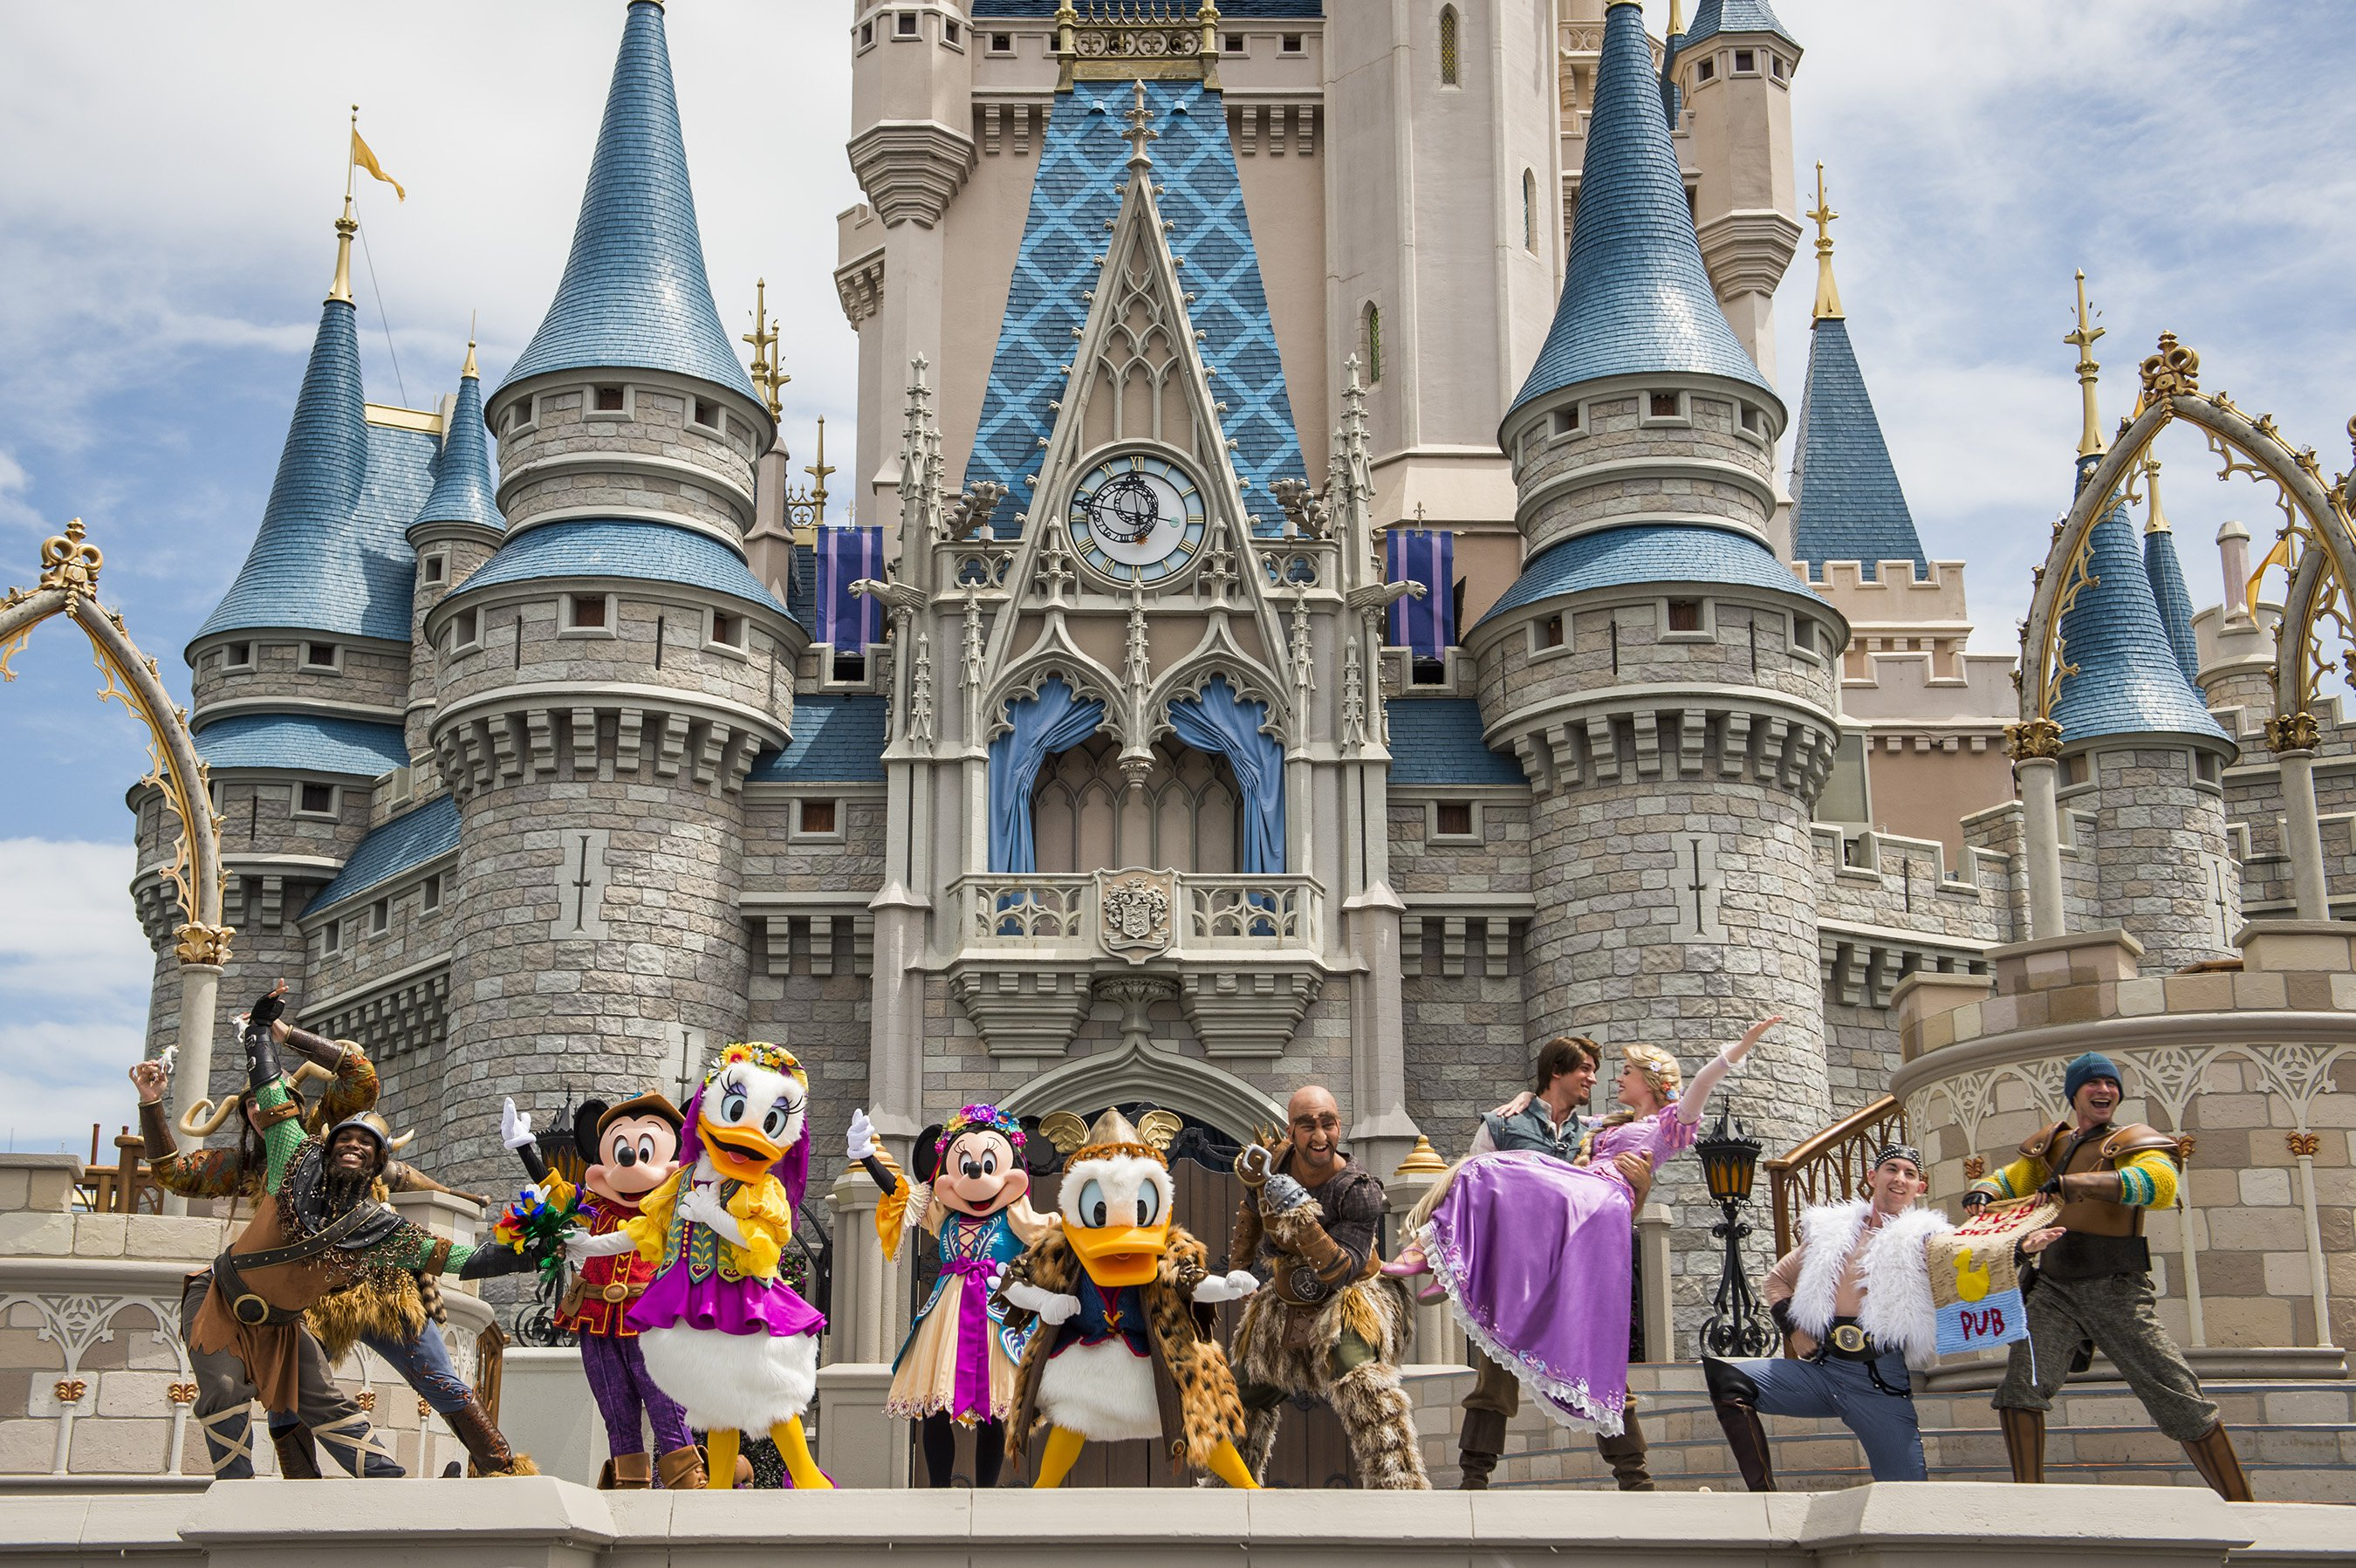 10 Things You Can't Do in Disney Parks